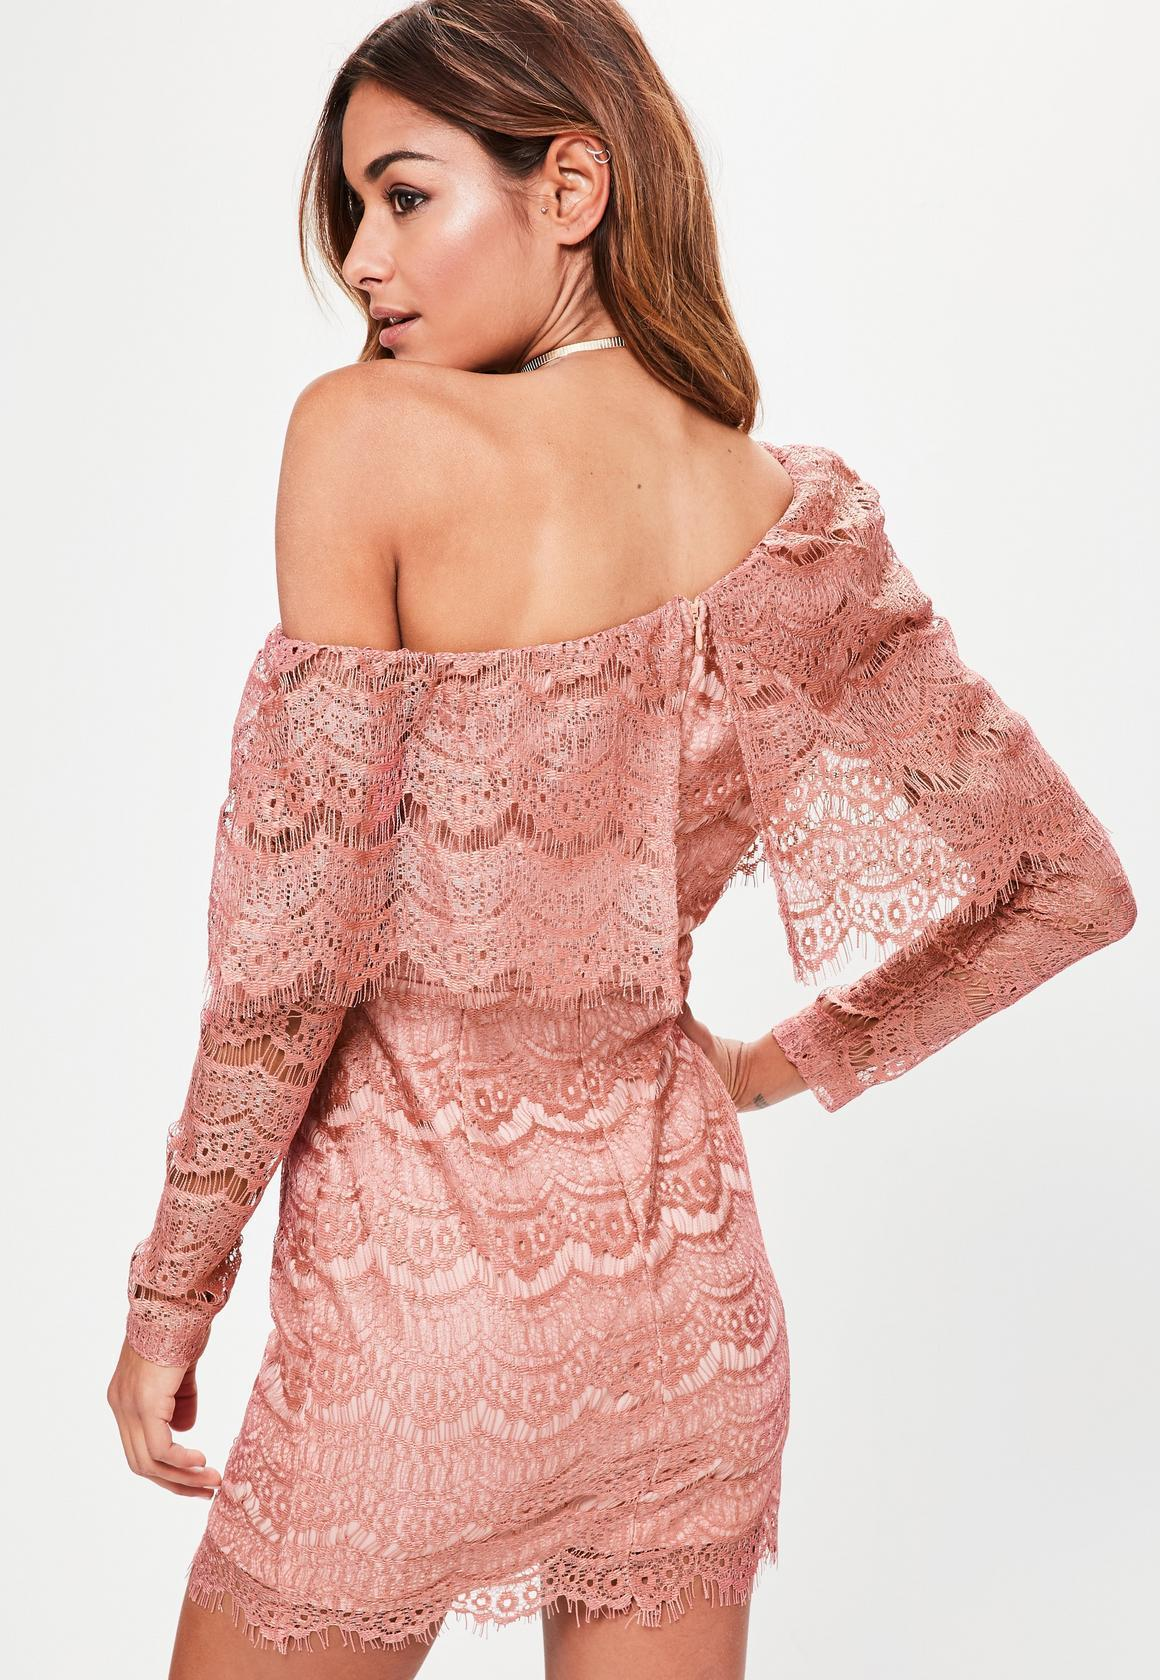 【海外限定】Missguided人気ドレス☆Pink Lace One Shoulder Lon